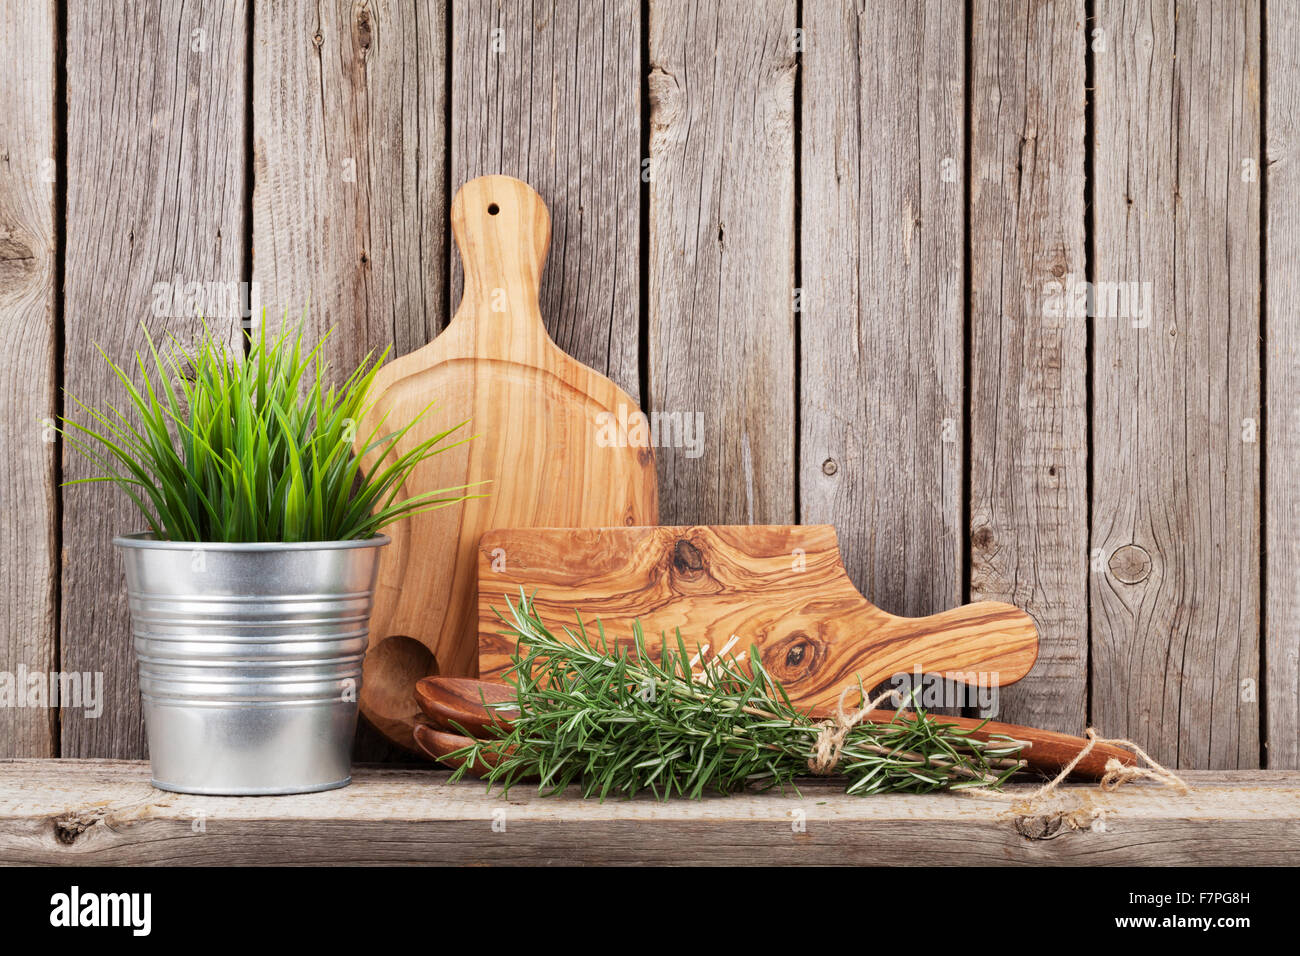 Cooking wood utensils and herbs on shelf in front of wooden wall with copy space - Stock Image